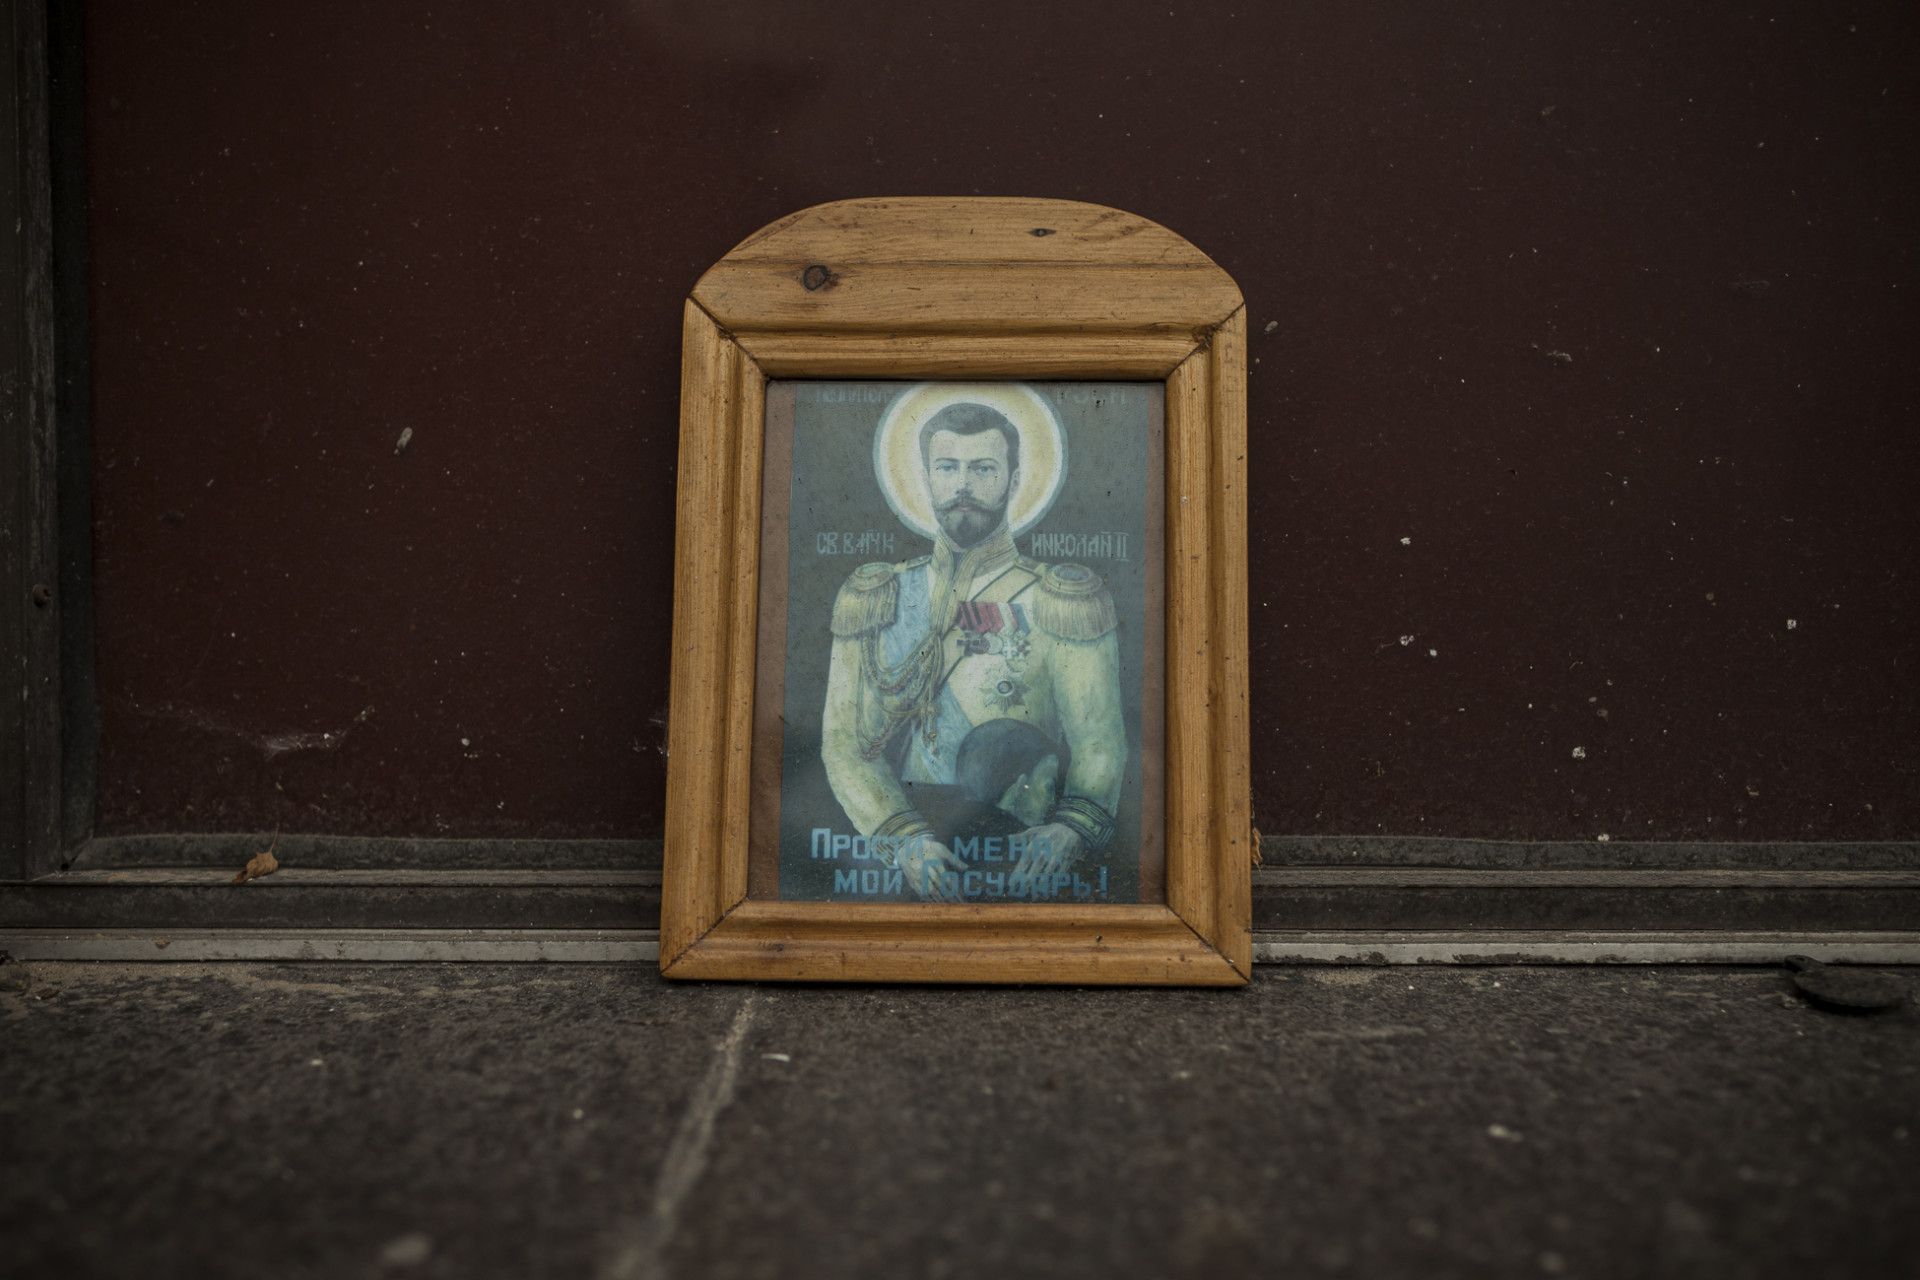 A religious icon left behind at the Rada by anti-Maidan activists depicting Nicholas II, the last tsar of Imperial Russia executed by the Bolsheviks in 1918 and rehabilitated by Putin's government in 2008.